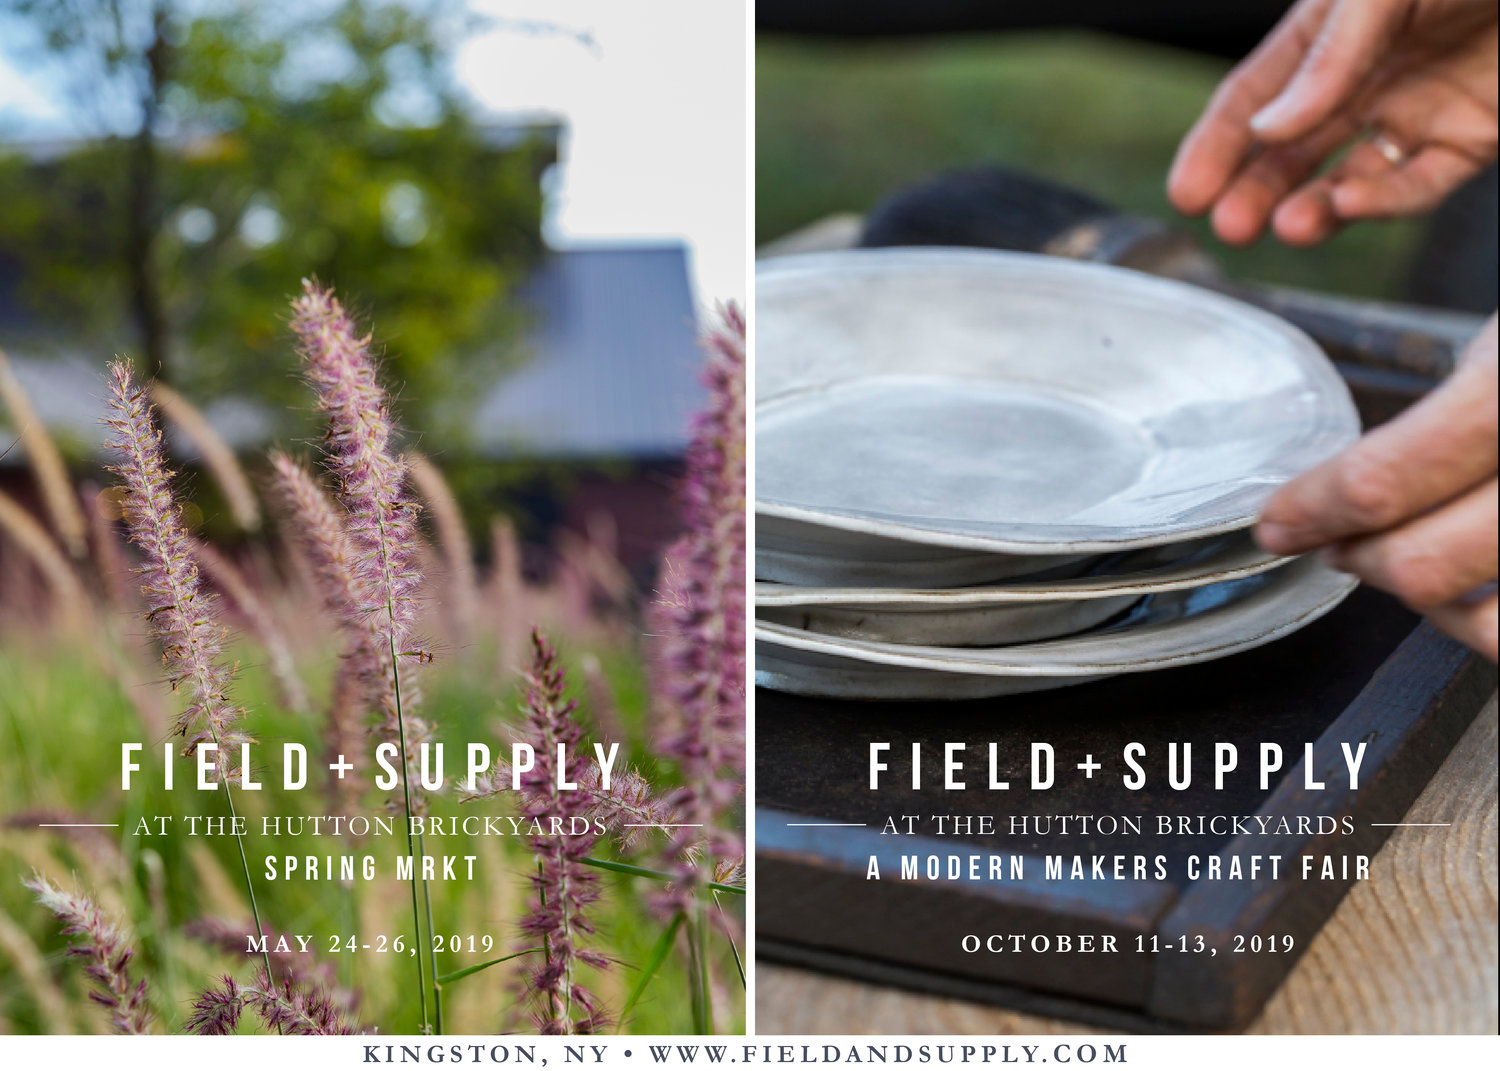 Join me and many other great makers and designers for this years FIELD + SUPPLY show, now in Spring and Fall!